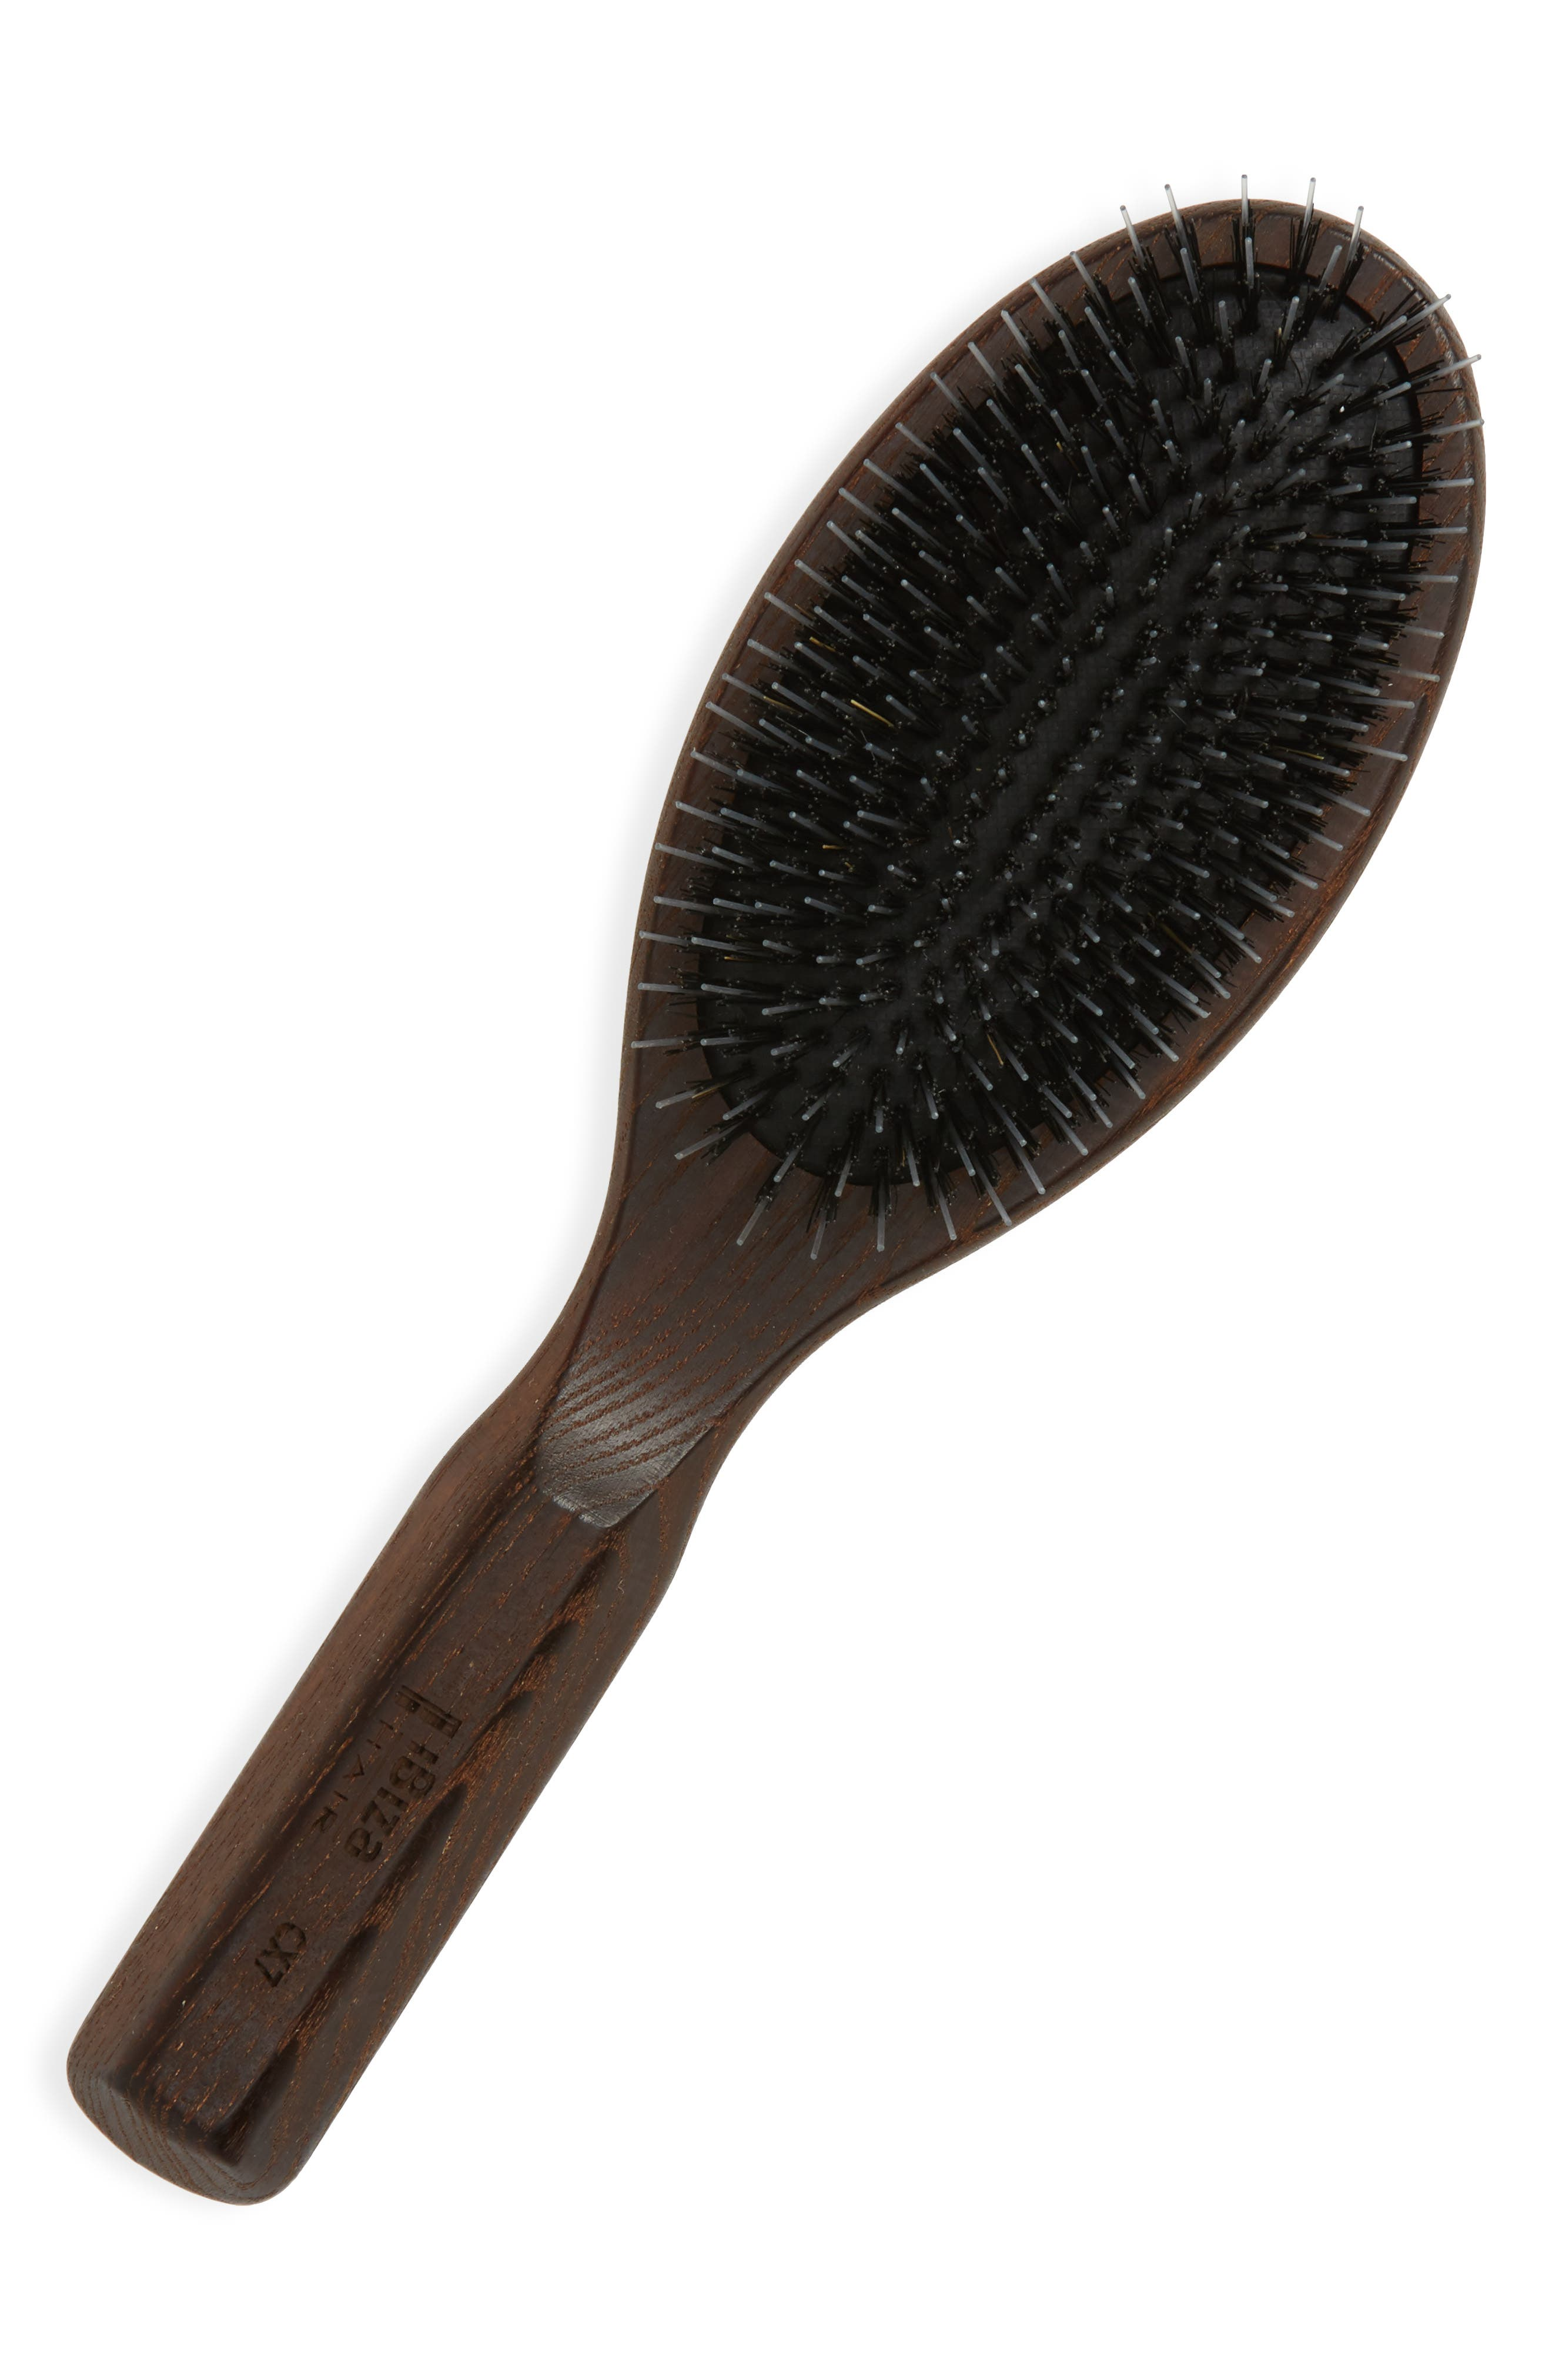 Hair CX7 Oval Handle Brush,                         Main,                         color, 000